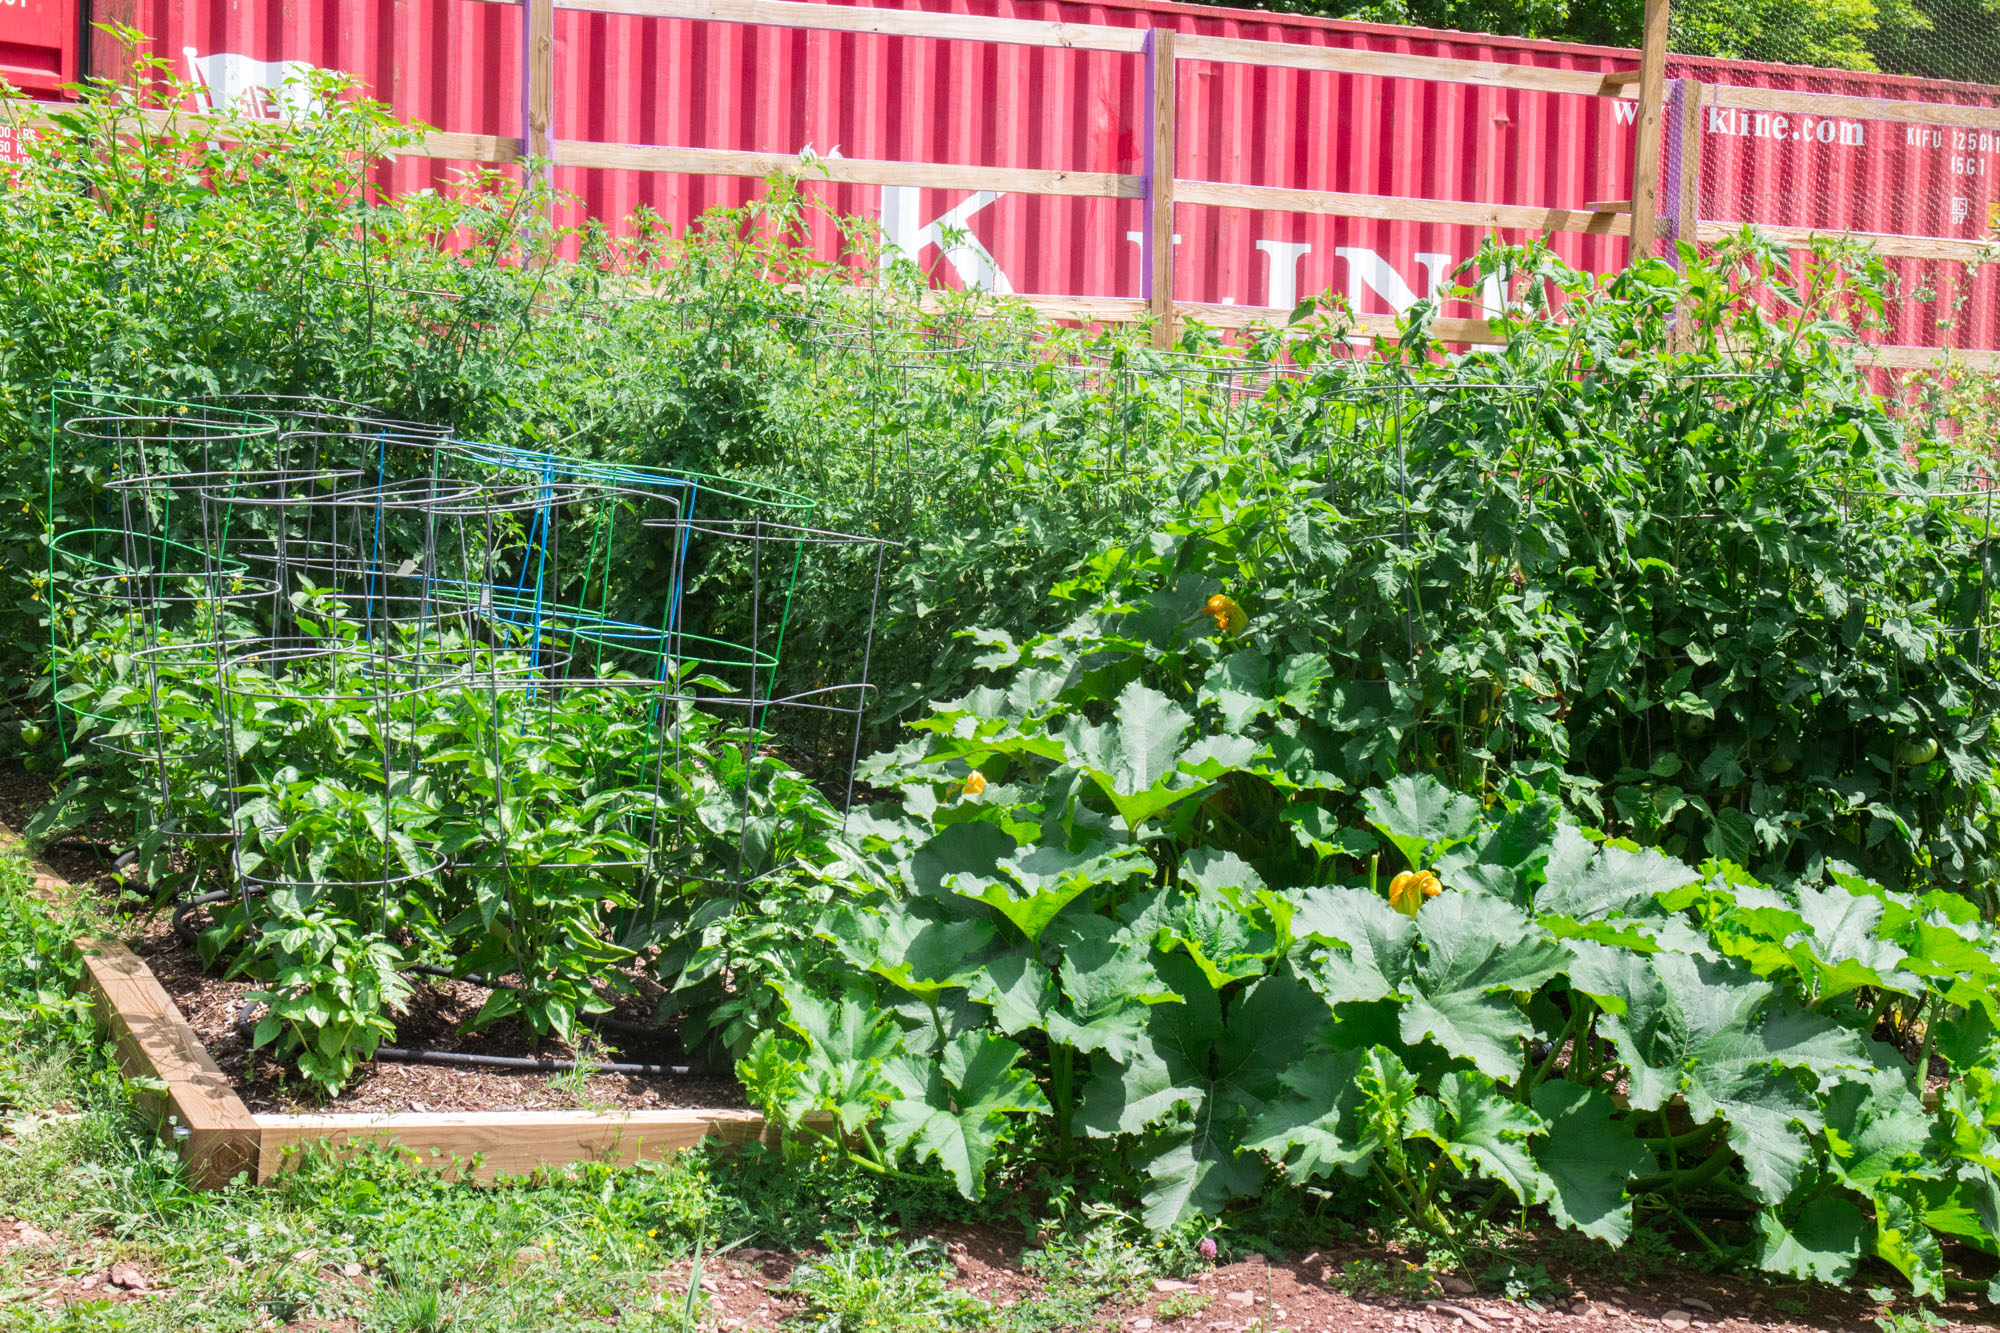 Brooklyn Farm Girl's Colorful Vegetable Garden in Upstate New York.